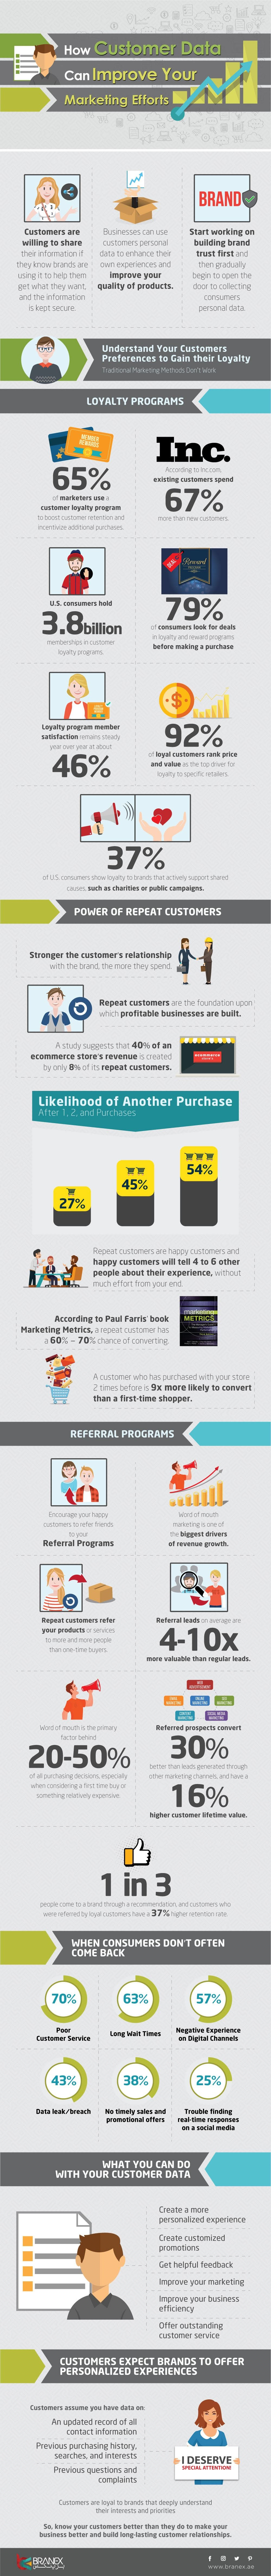 How Customer Data Can Improve Your Marketing Efforts #infographic